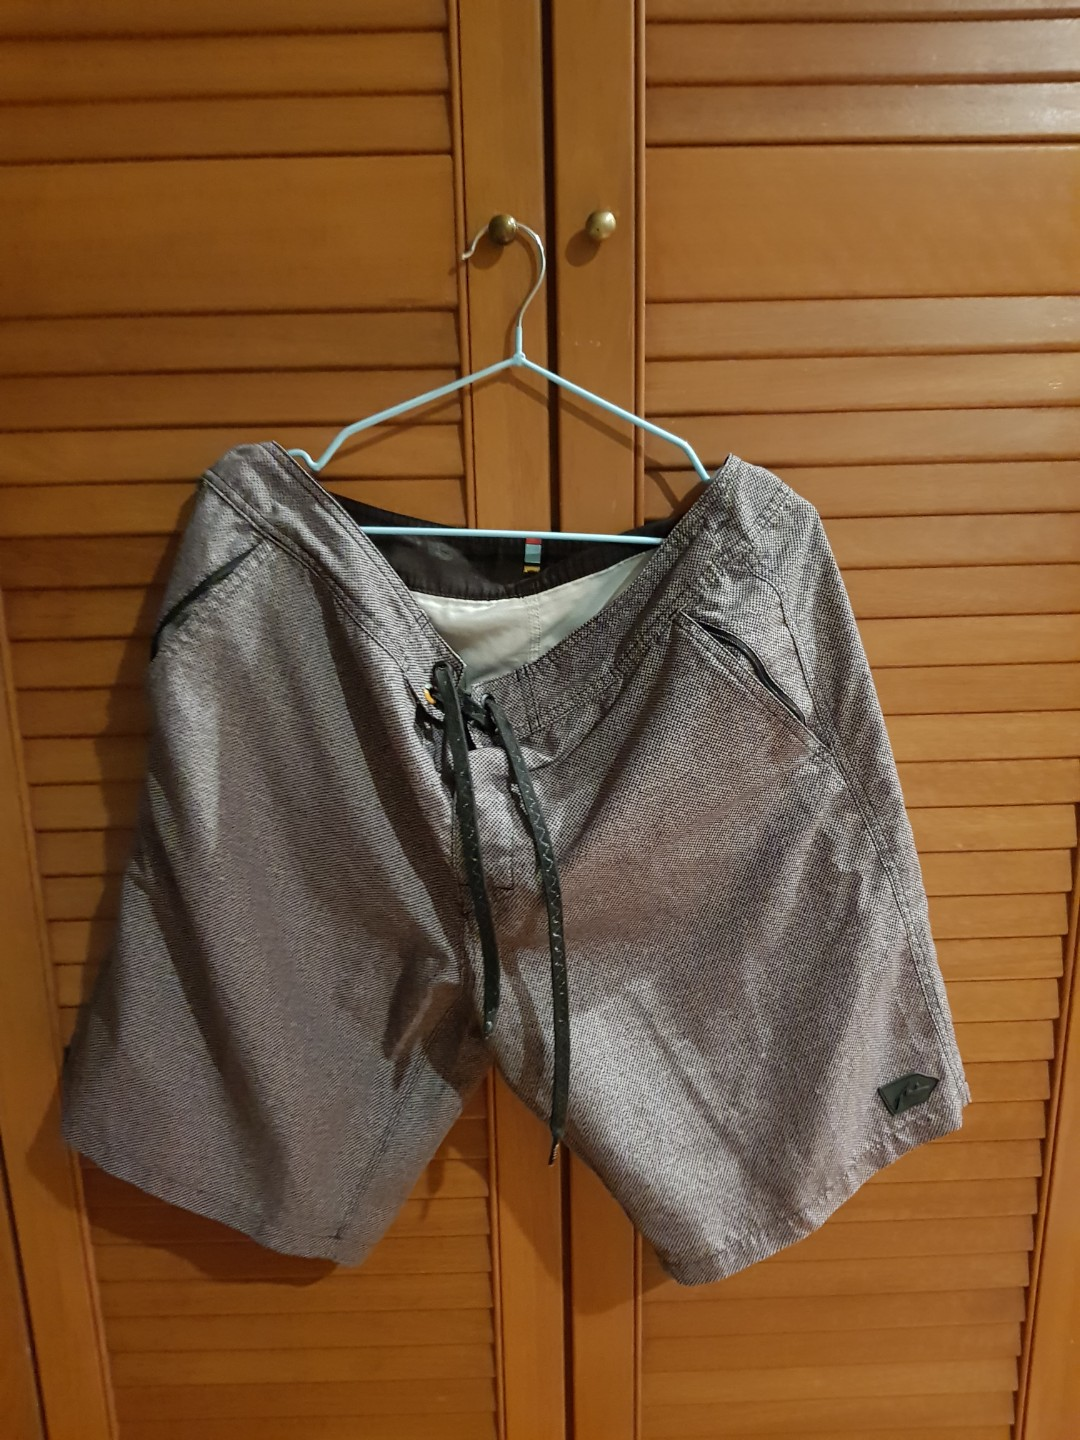 0e866cd446 Rusty boardshorts size 36, Men's Fashion, Clothes on Carousell